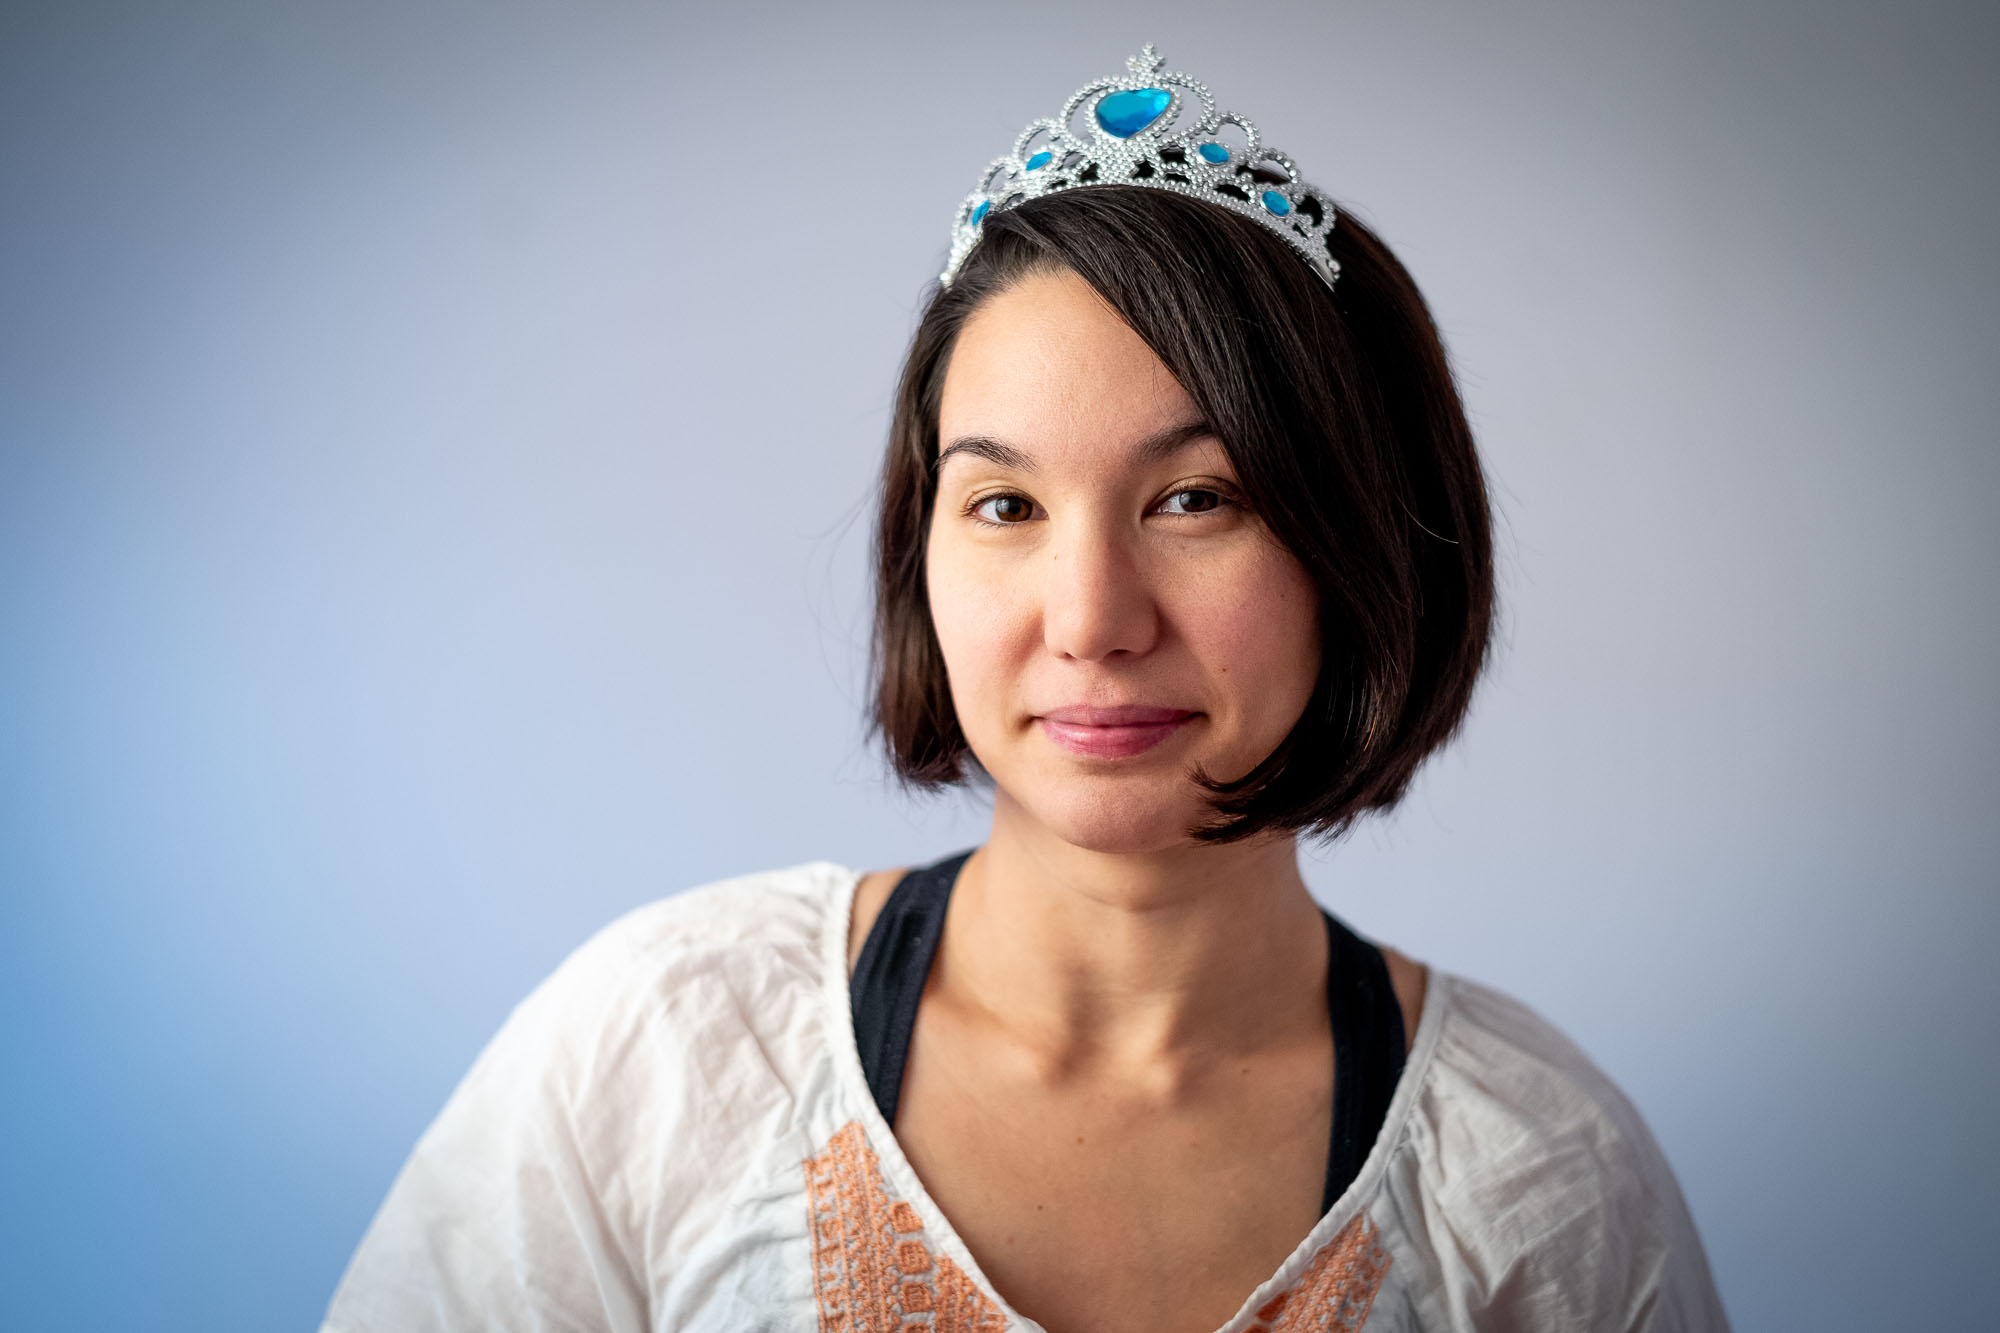 Ulya with our dautgher's Elsa tiara on her head